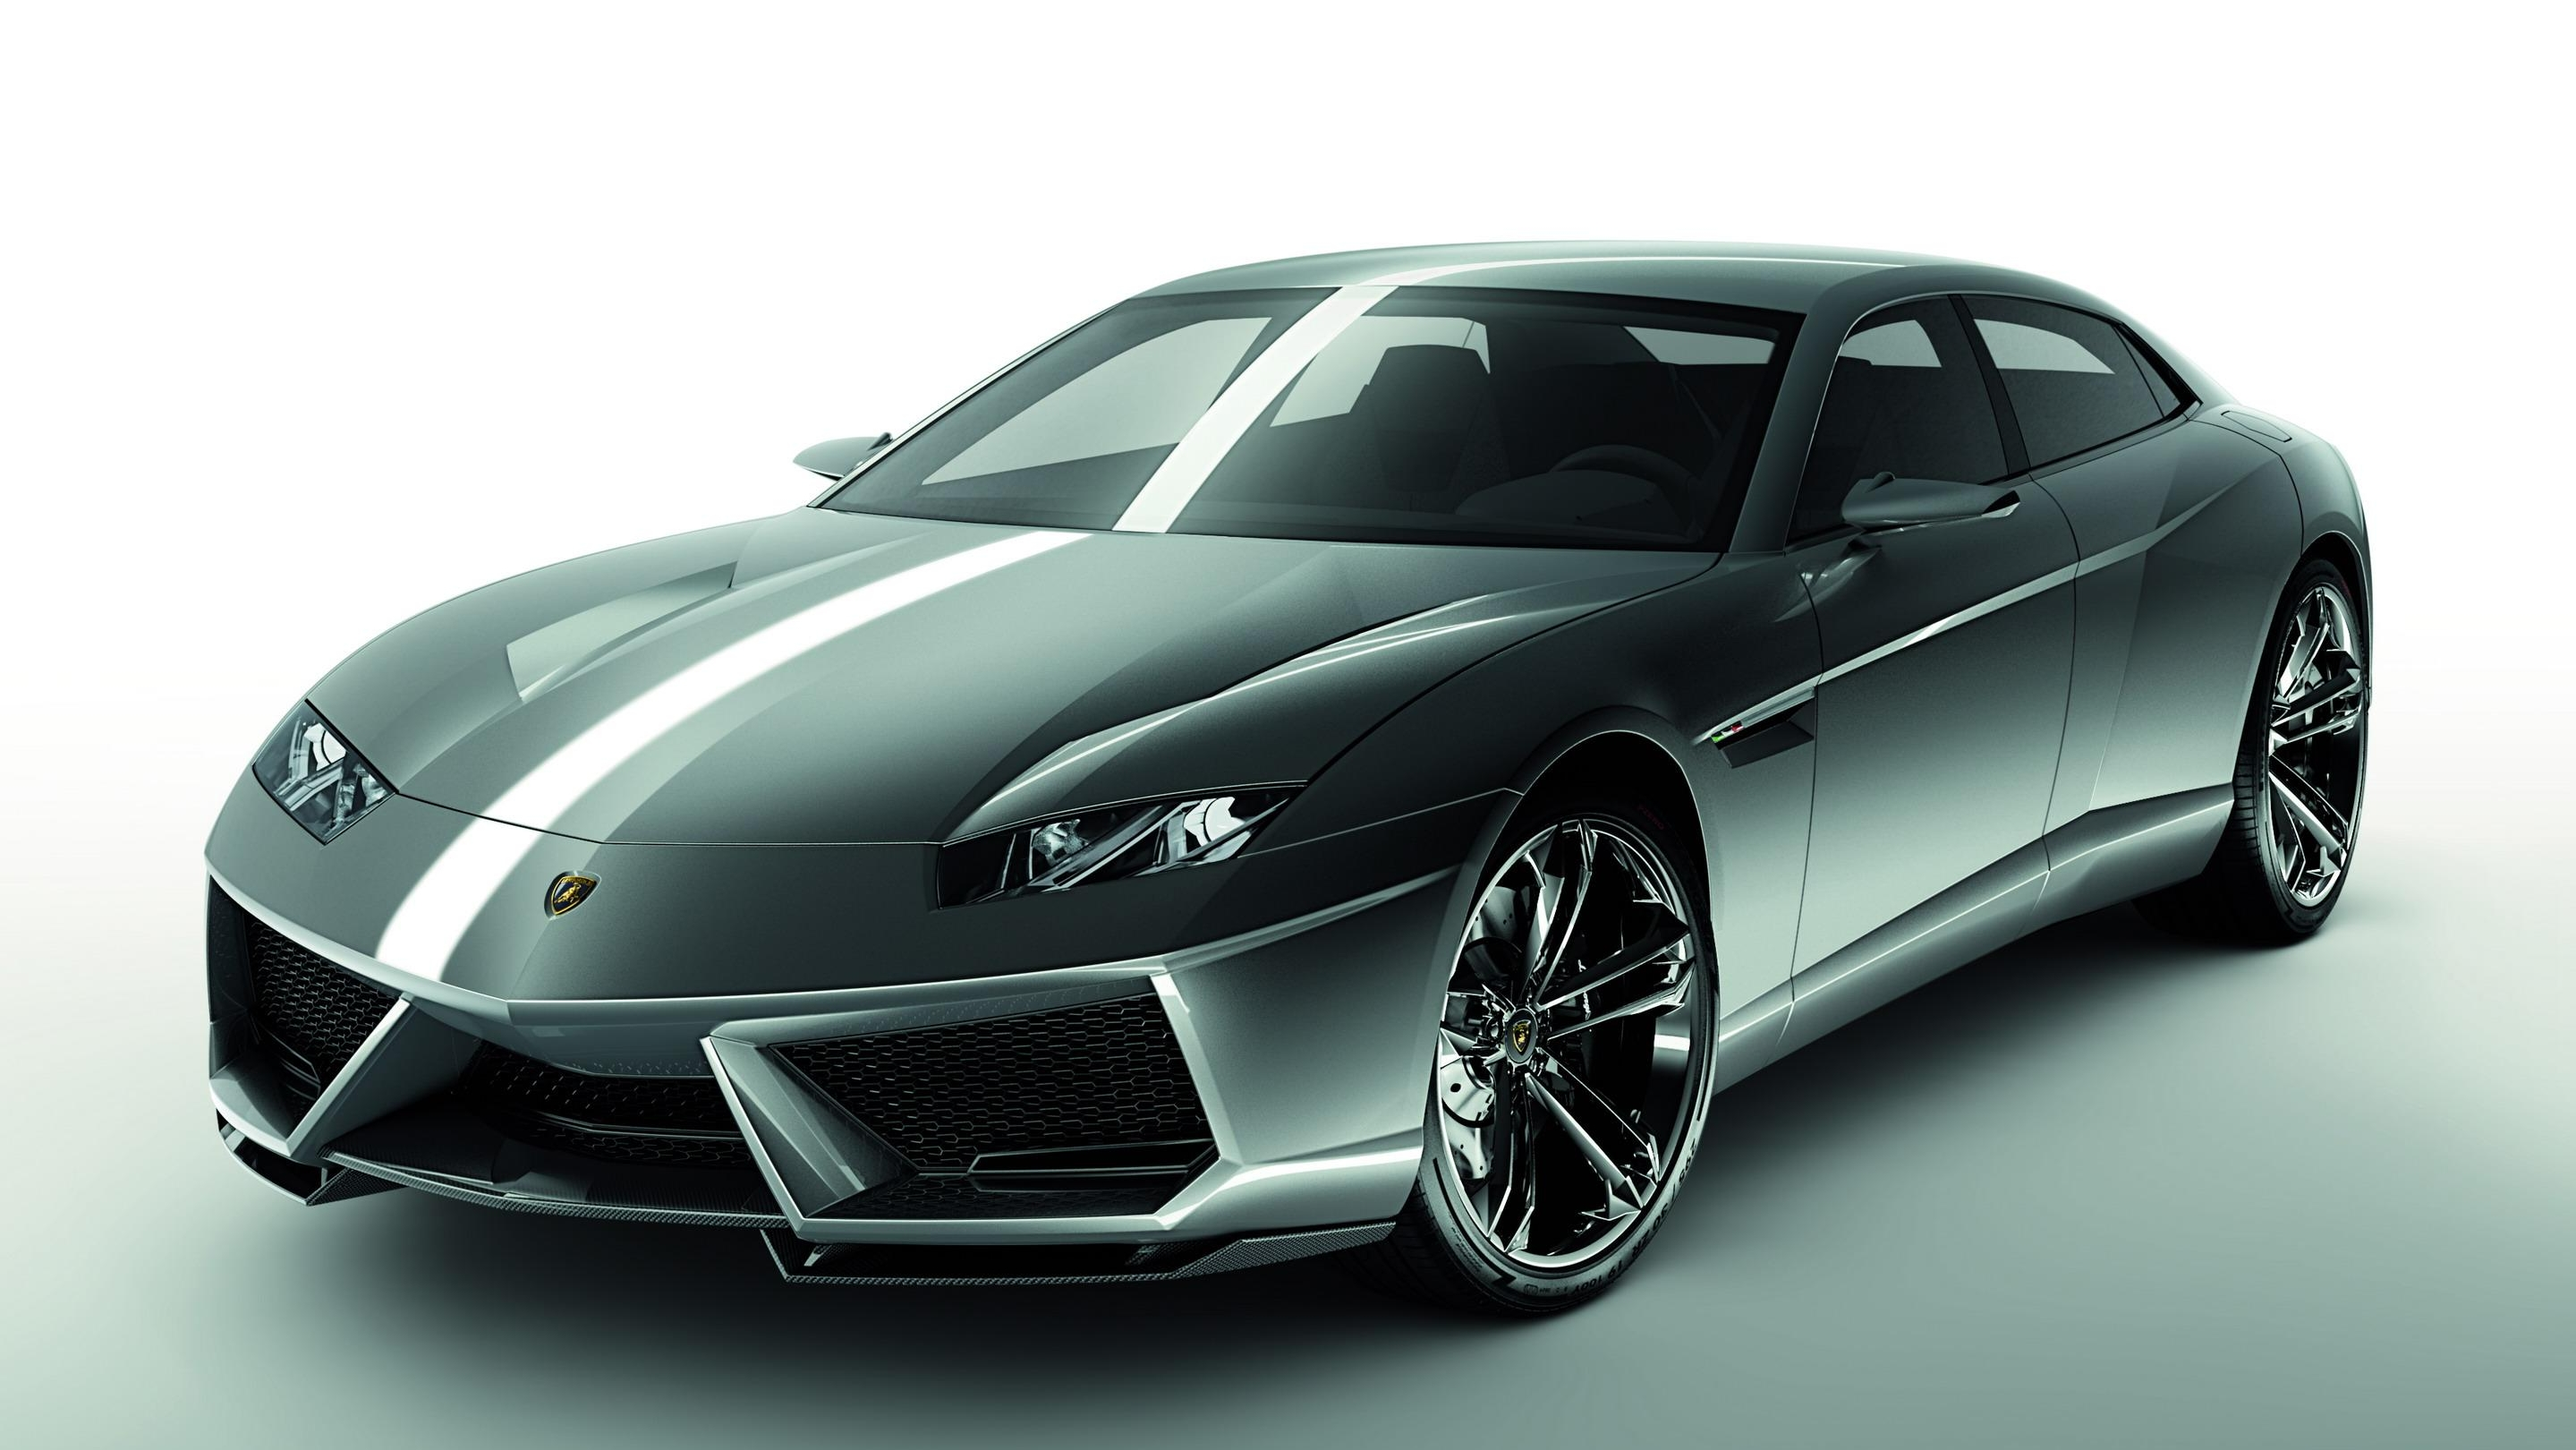 Lamborghini Ceo Leaves Door Open For Four Door Sedan Shuts Down